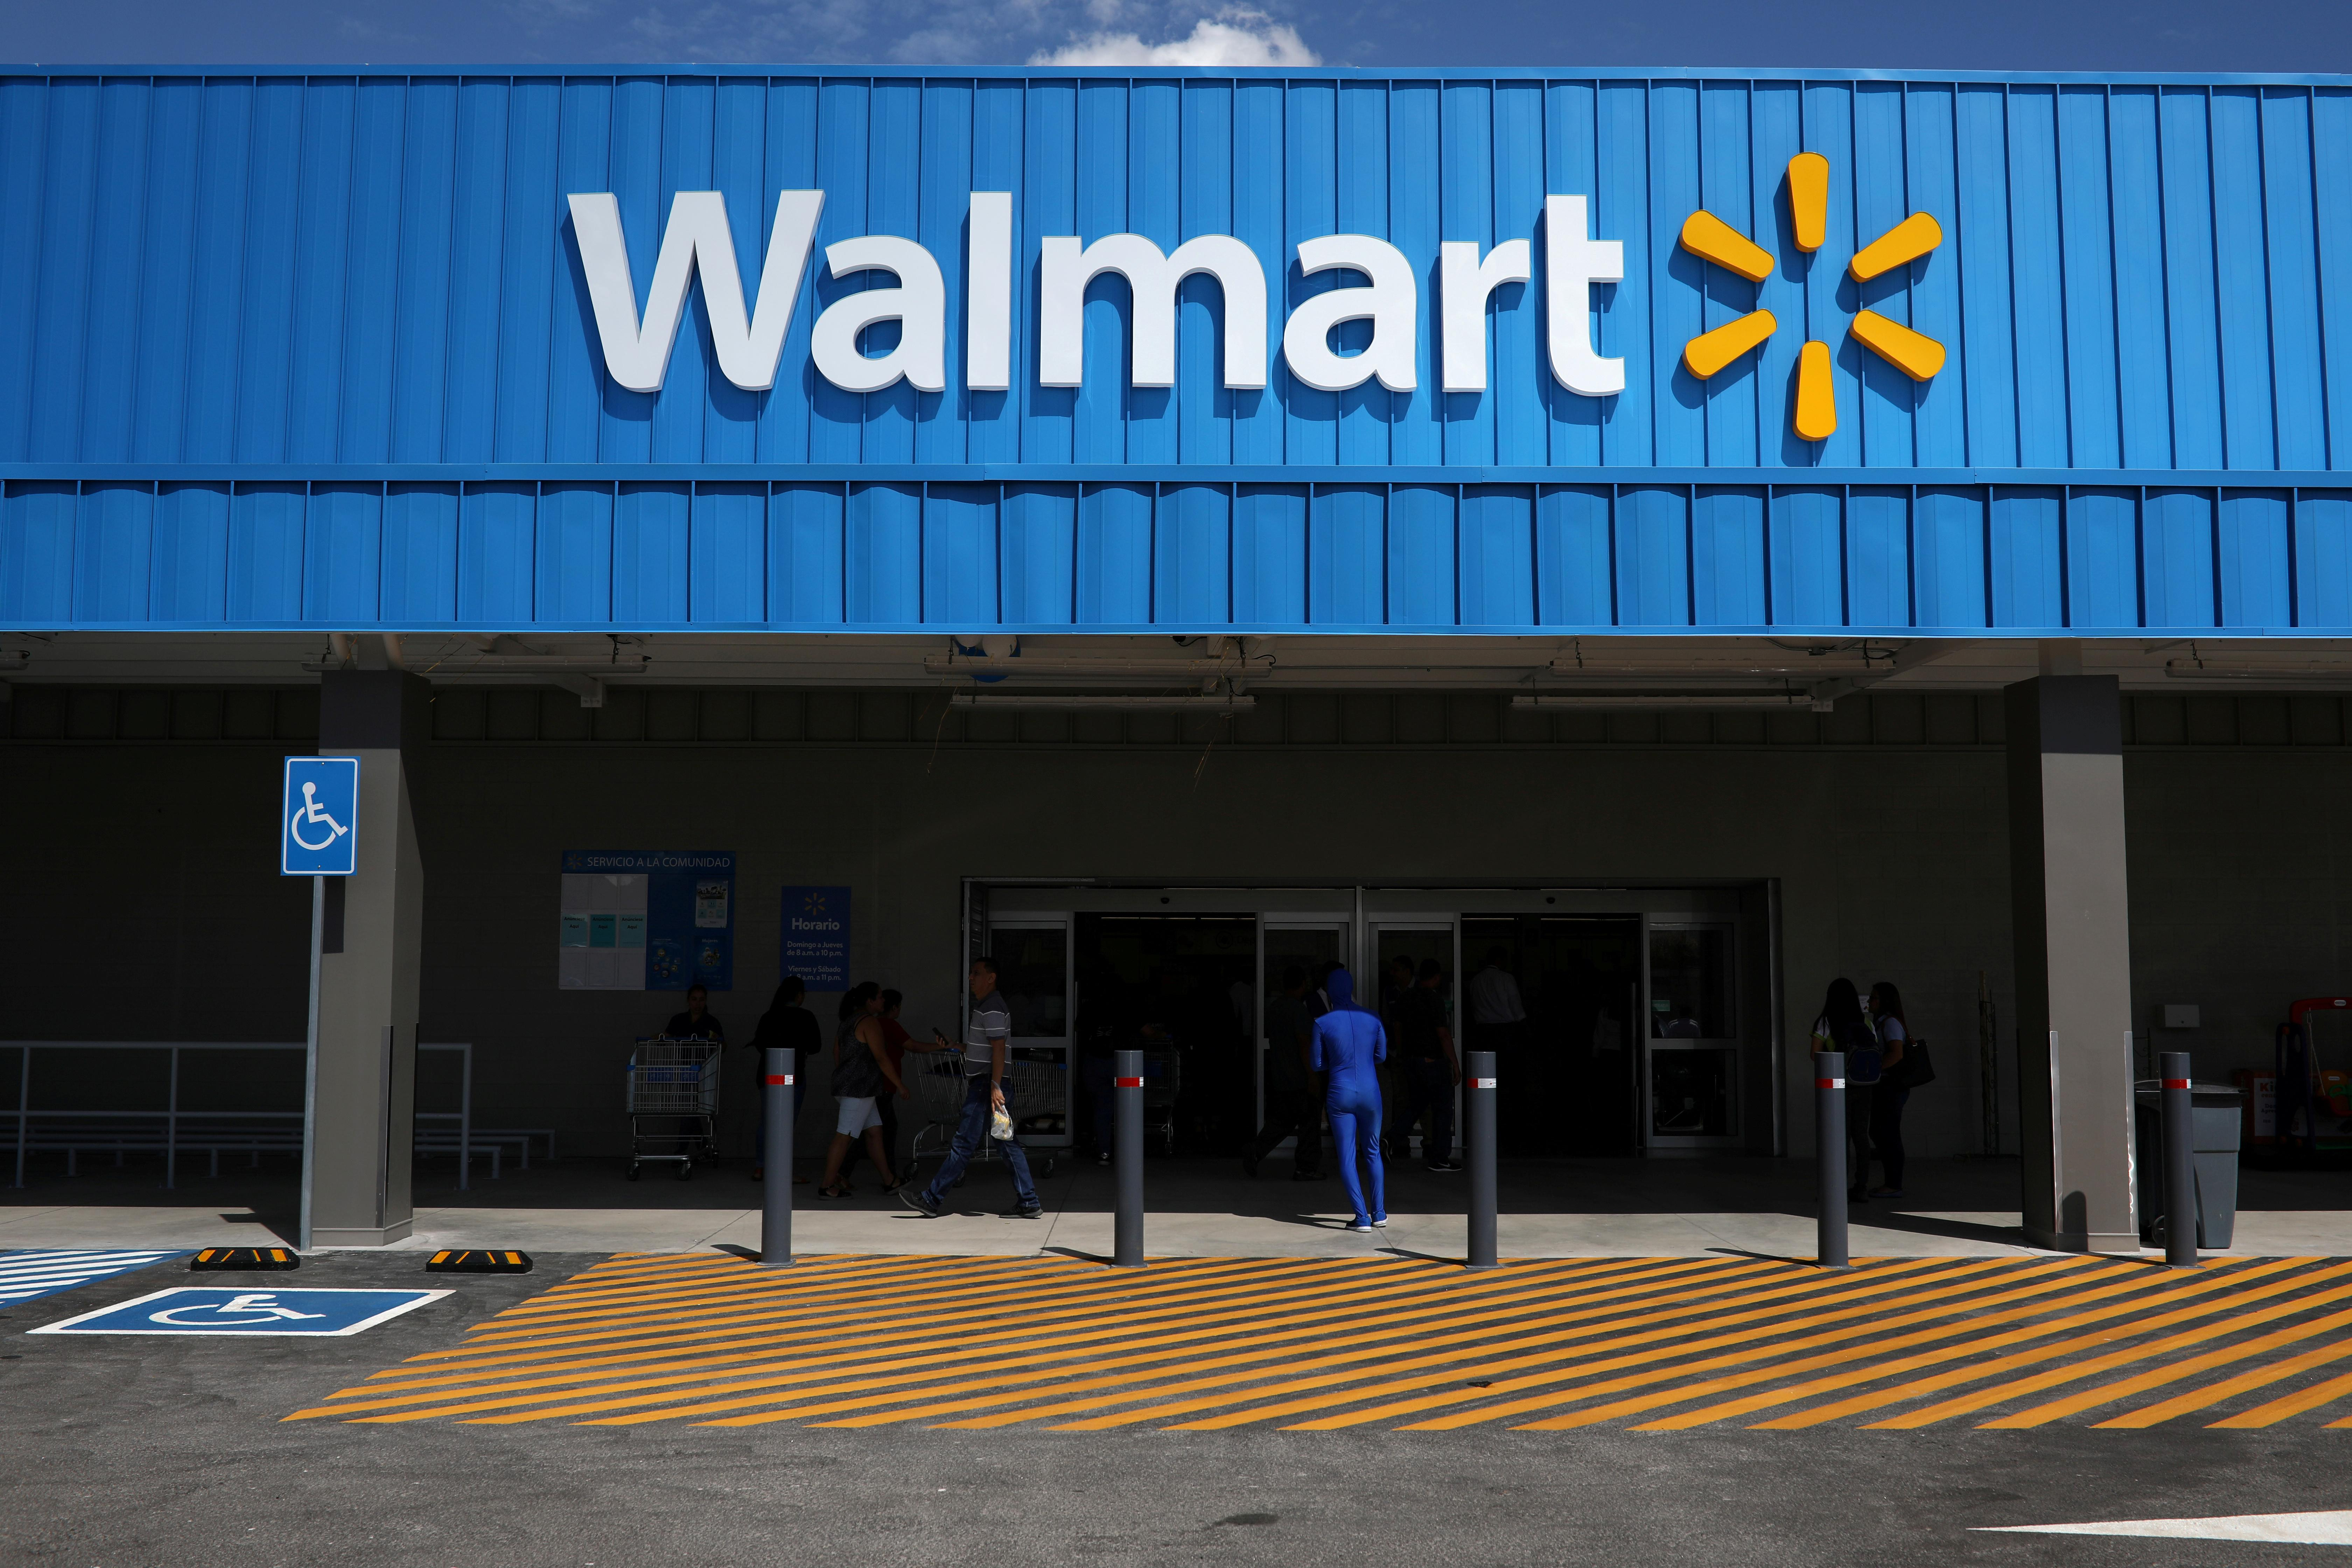 Walmart and IBM have partnered to launch